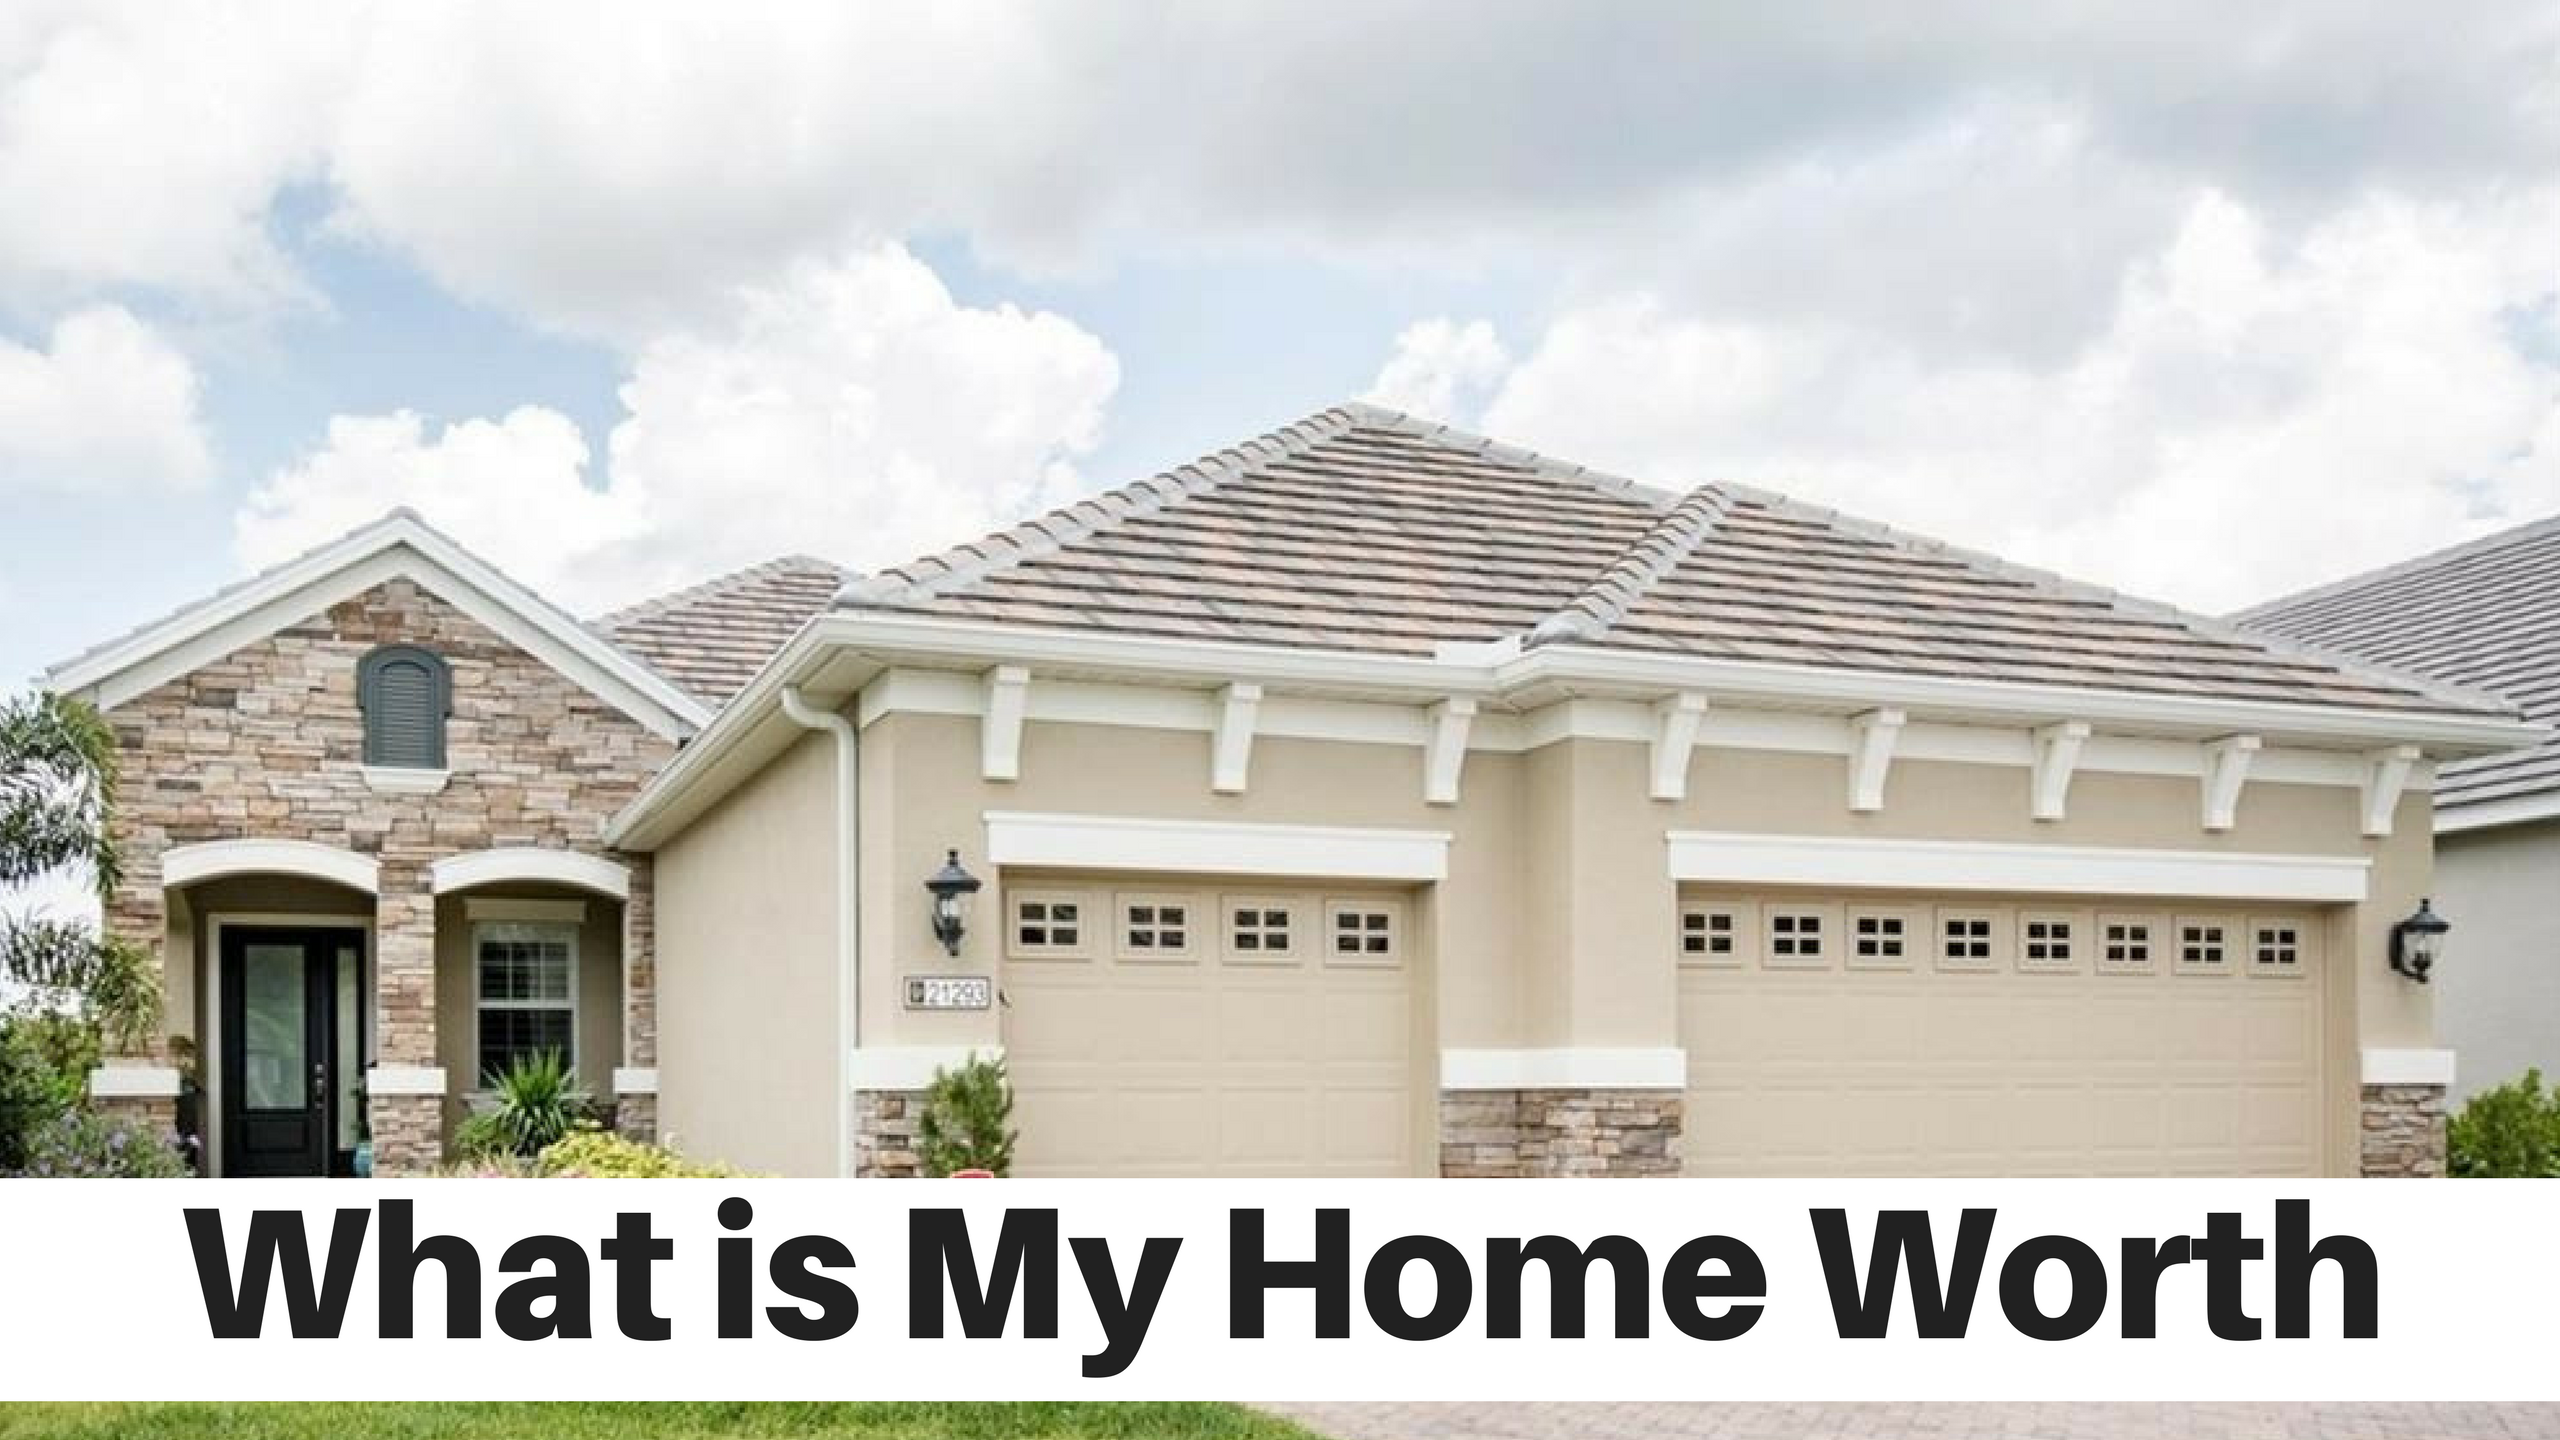 What is My Home Worth in bonita springs real estate in bointa springs homes for sale in bointa sprin